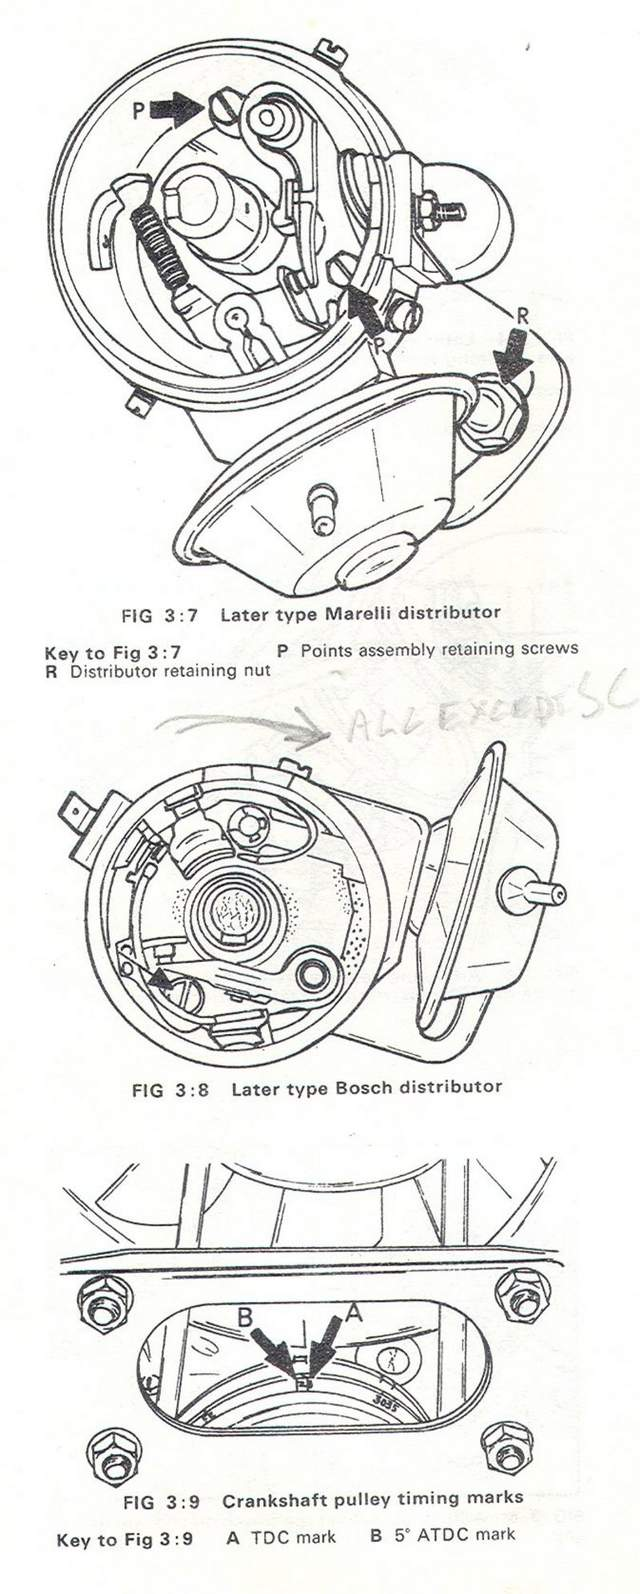 Is there good literature on how Bosch Distributors work